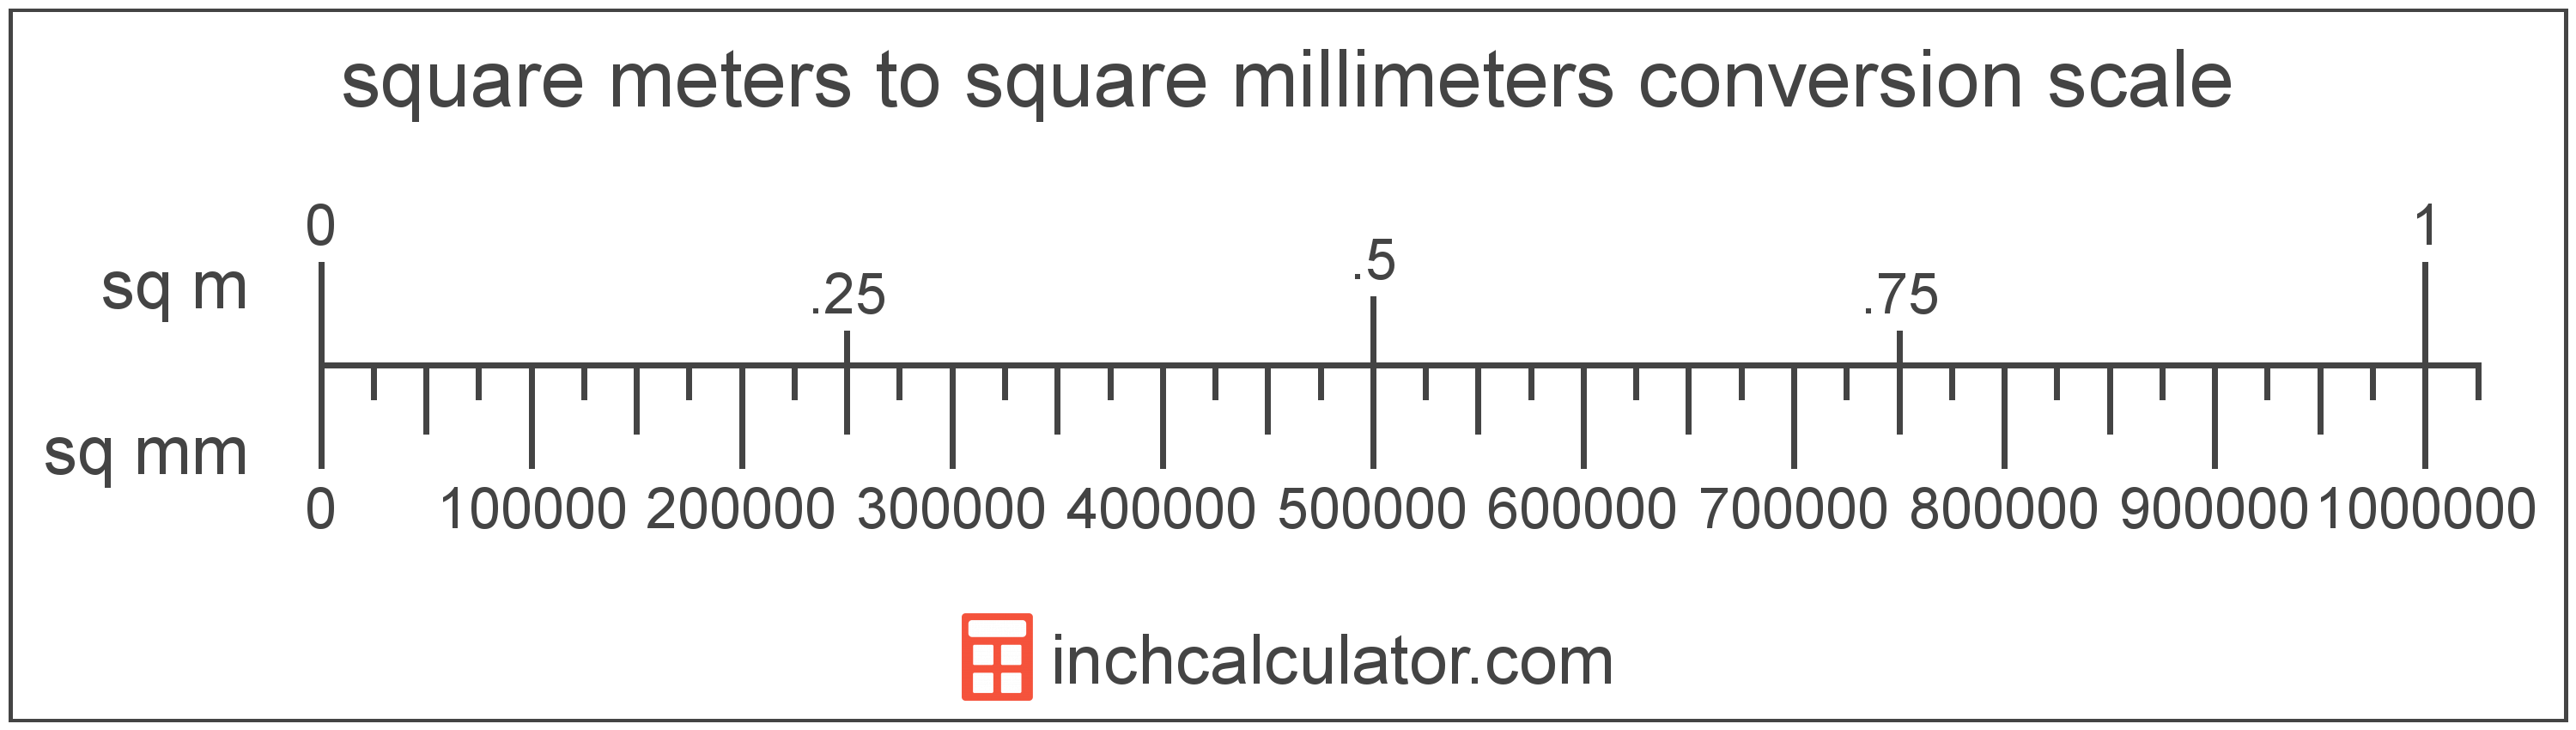 conversion scale showing square millimeters and equivalent square meters area values